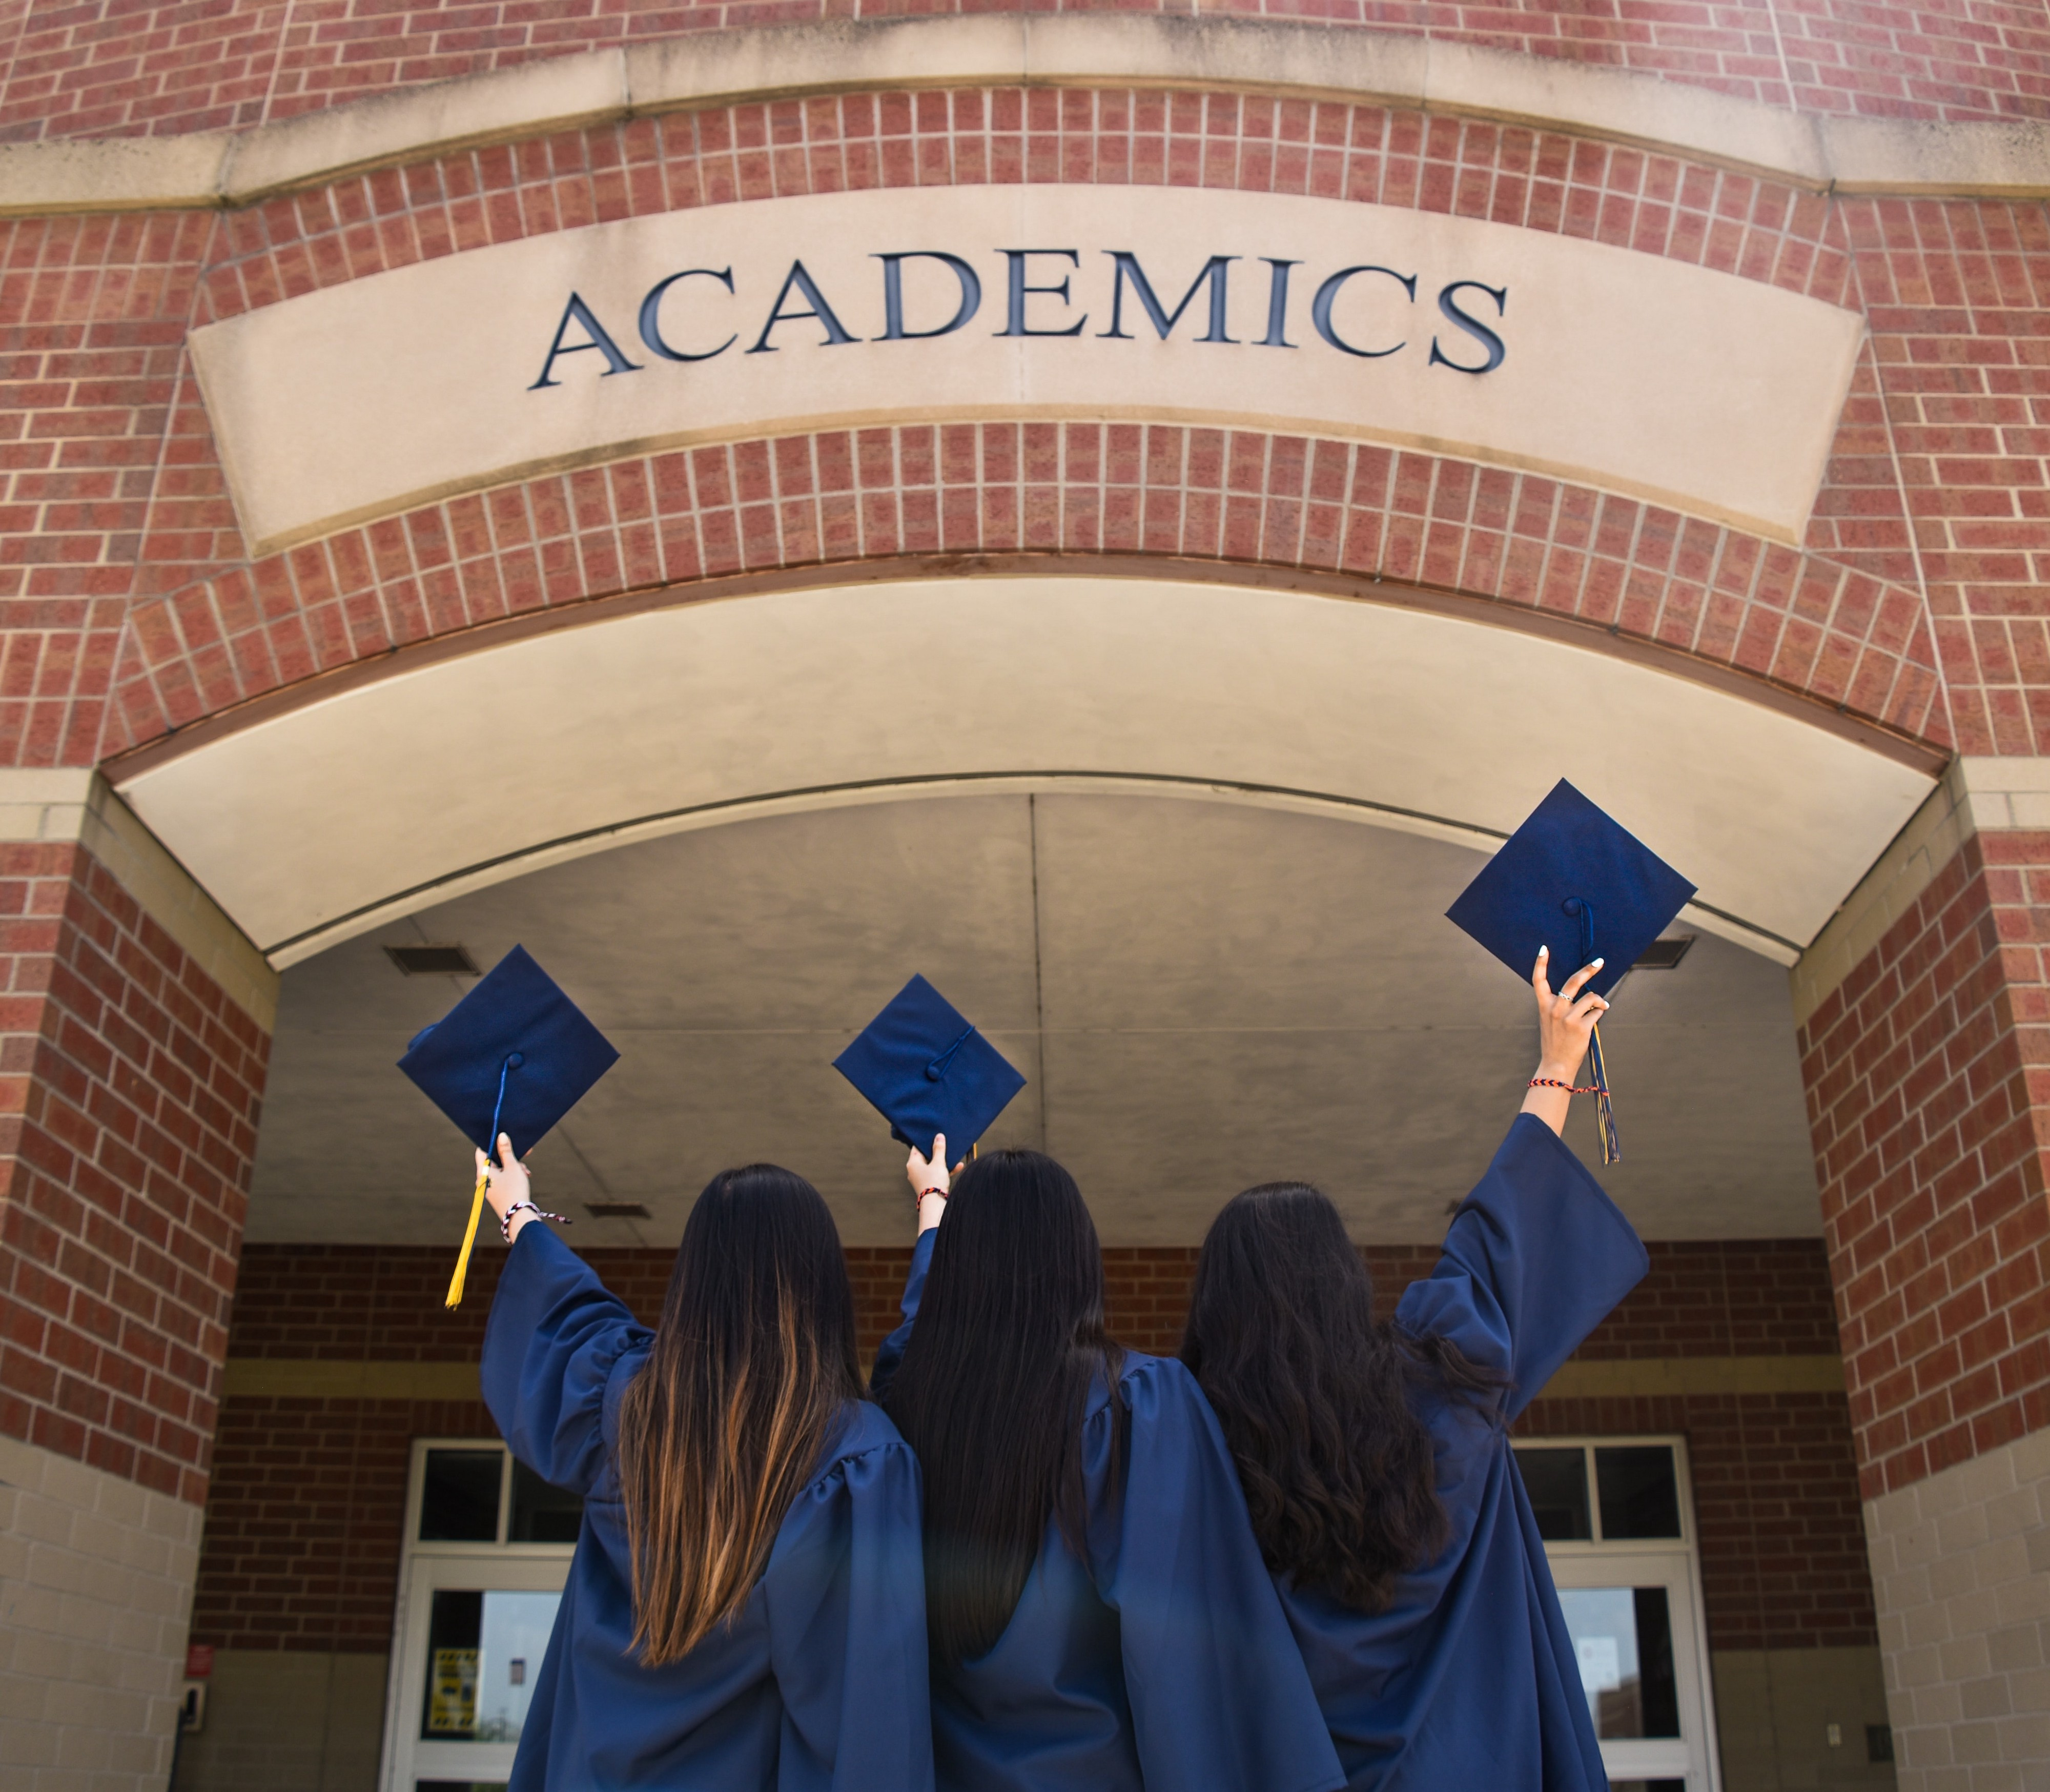 Three young women in graduation robes hold their caps up high.